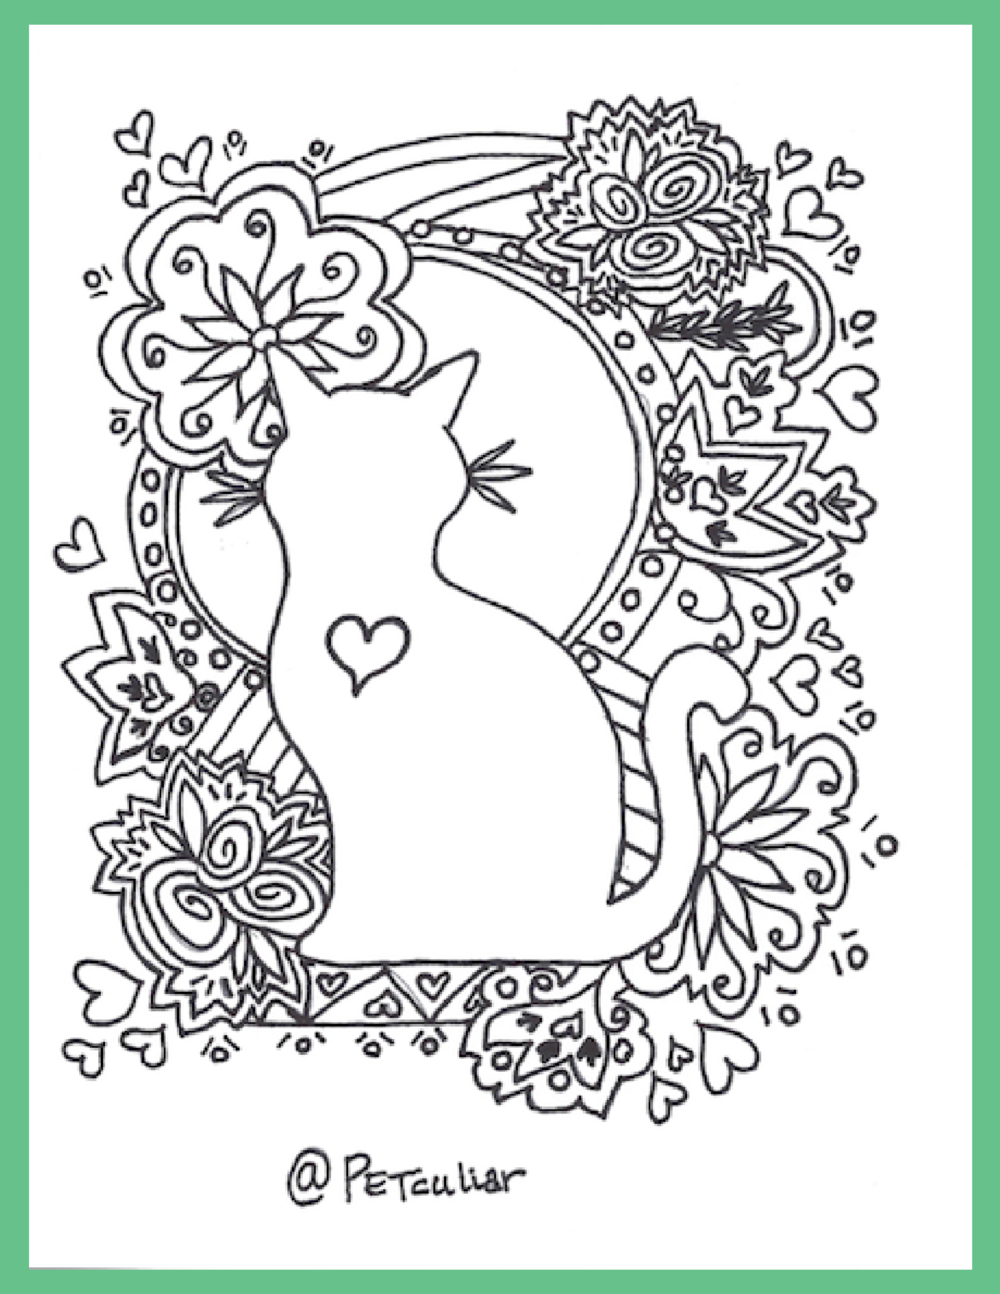 Petculiar Cat Love Coloring Page